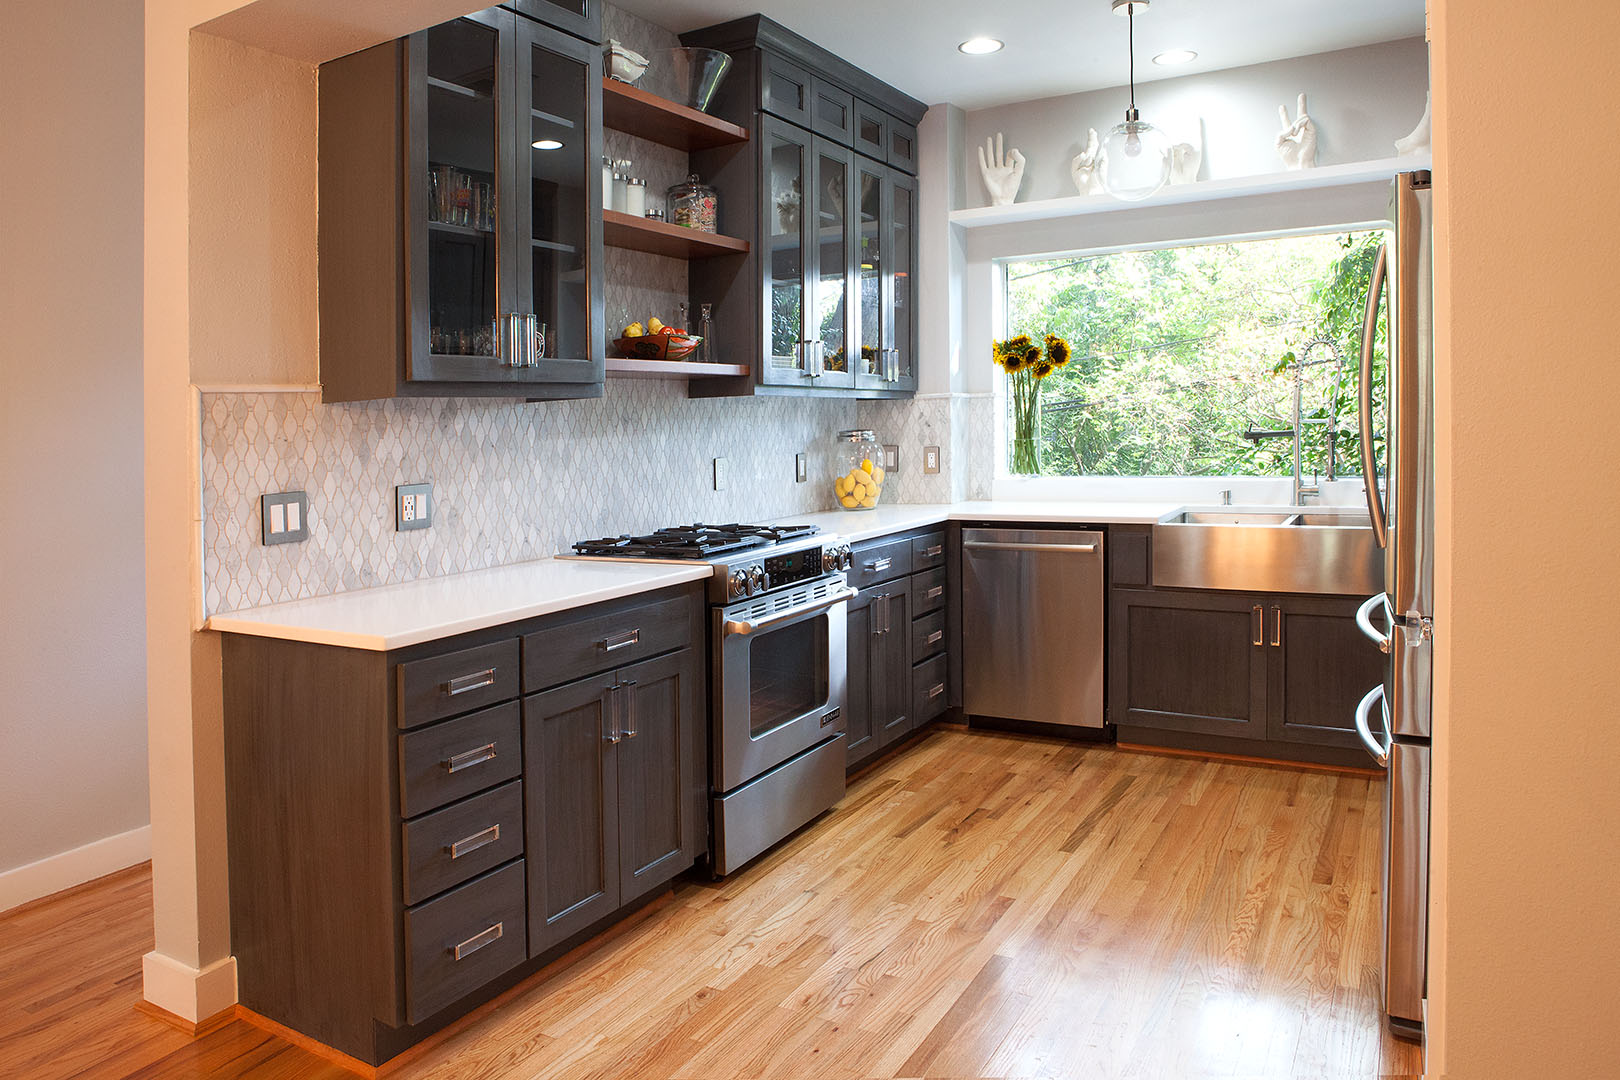 Kitchen interior design in Oakland, CA